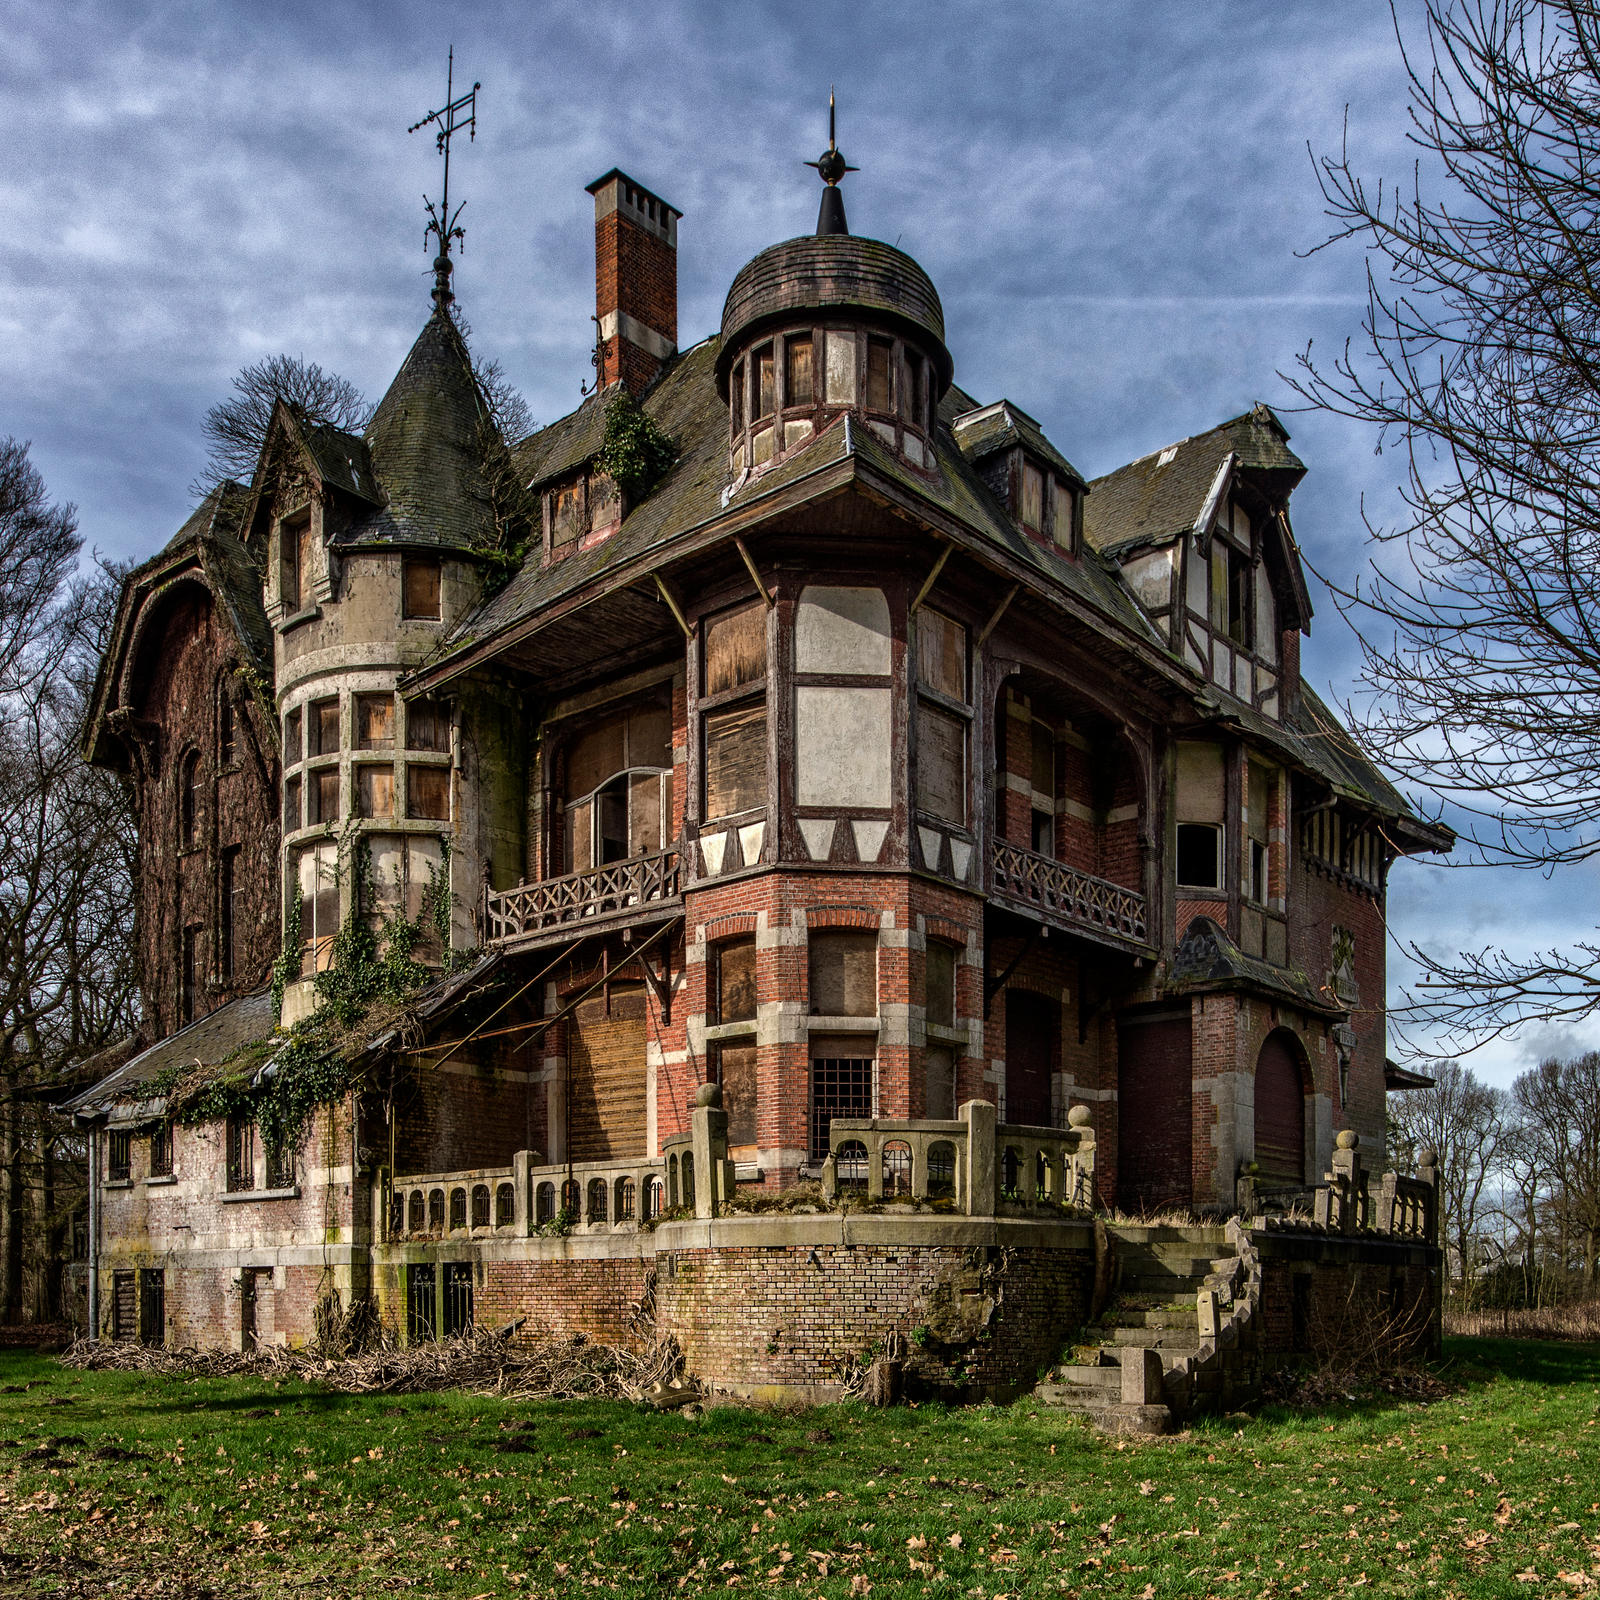 Abandoned Mansion In Belgium. Photo By Bram Zanden [OS